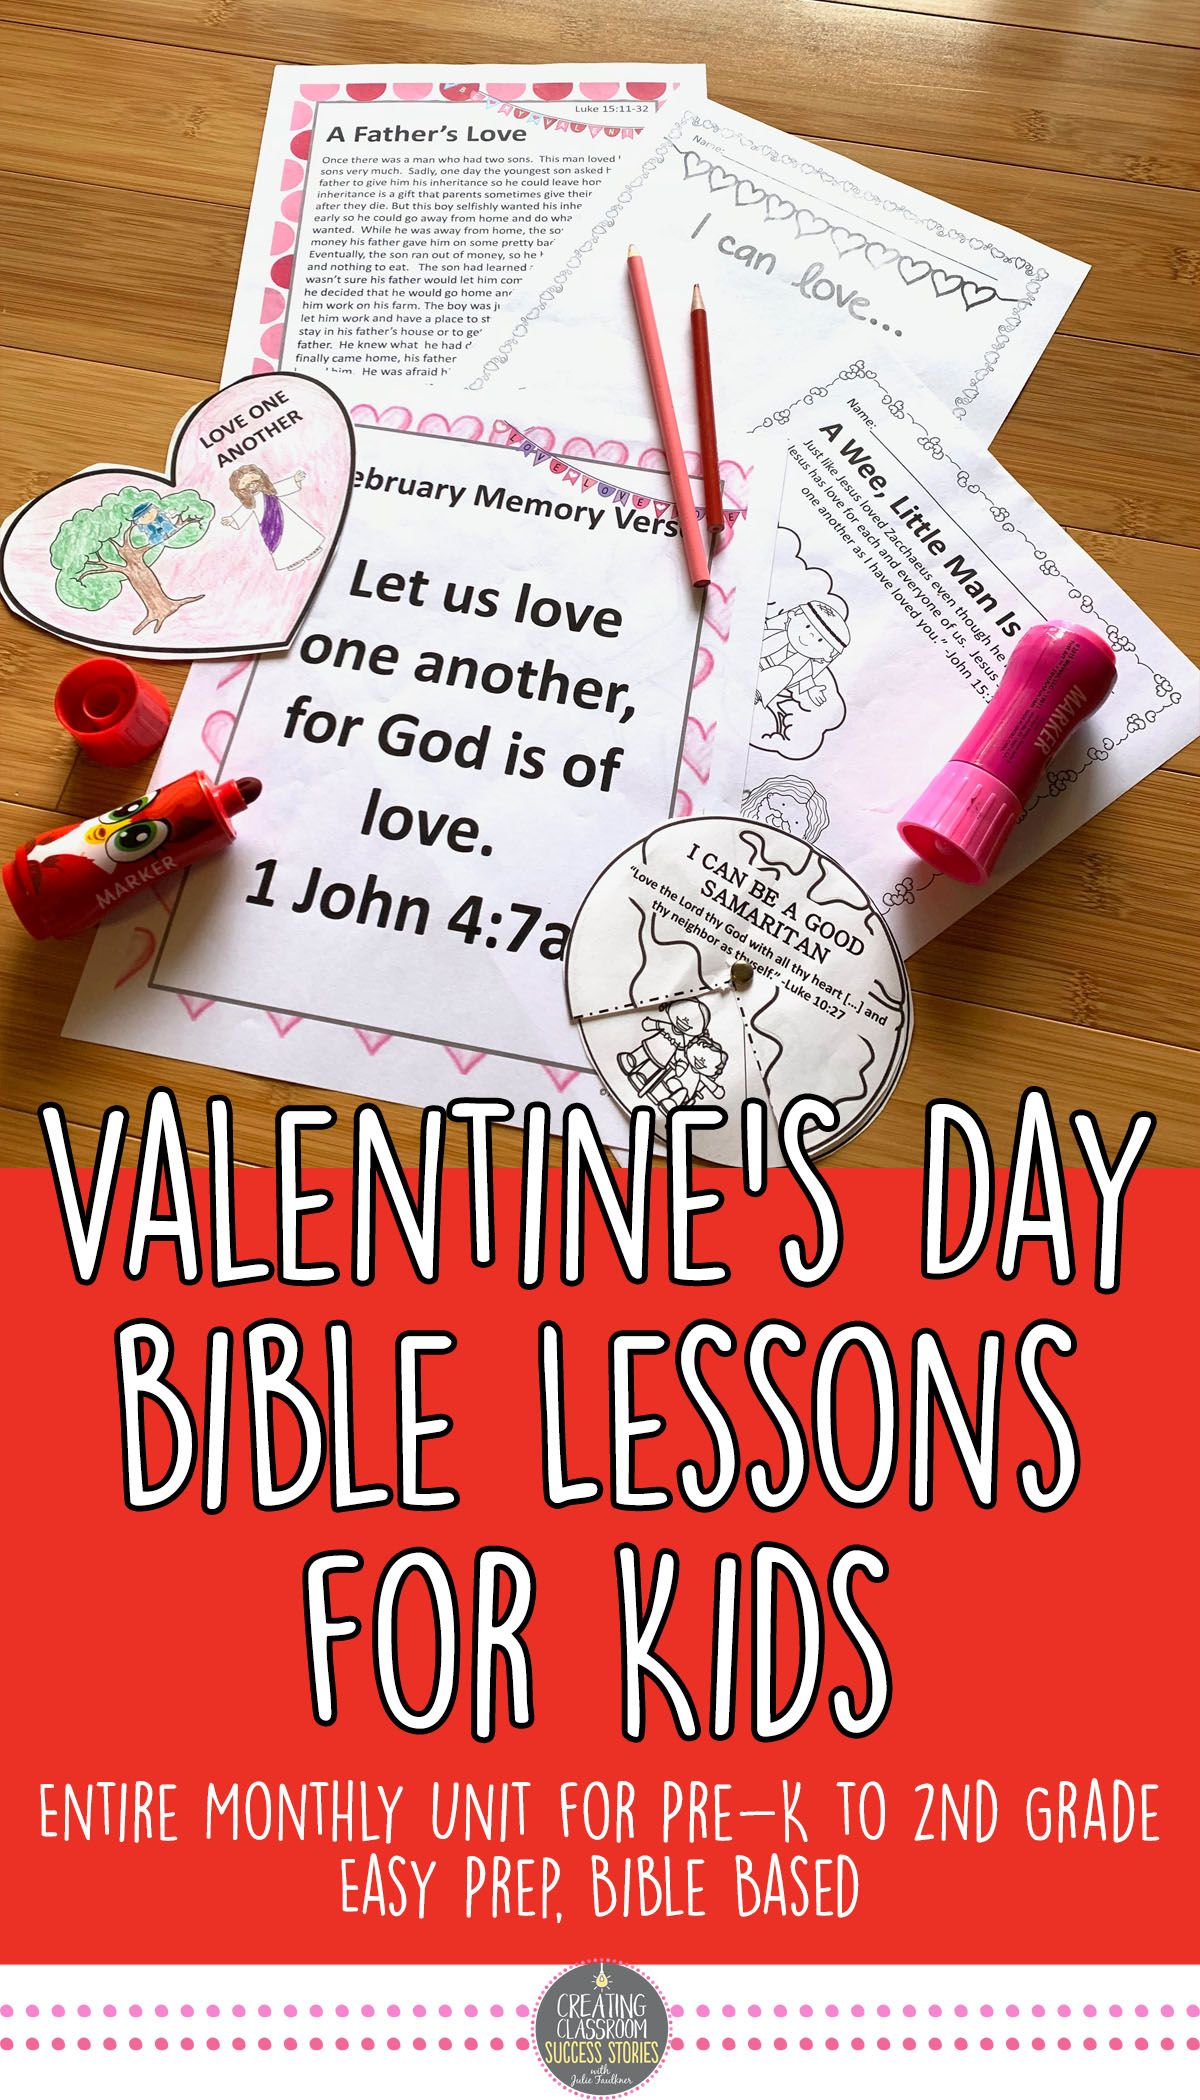 Valentine S Day Bible Lessons For Kids Valentine S Day Bible Activities For Kids Bible Crafts